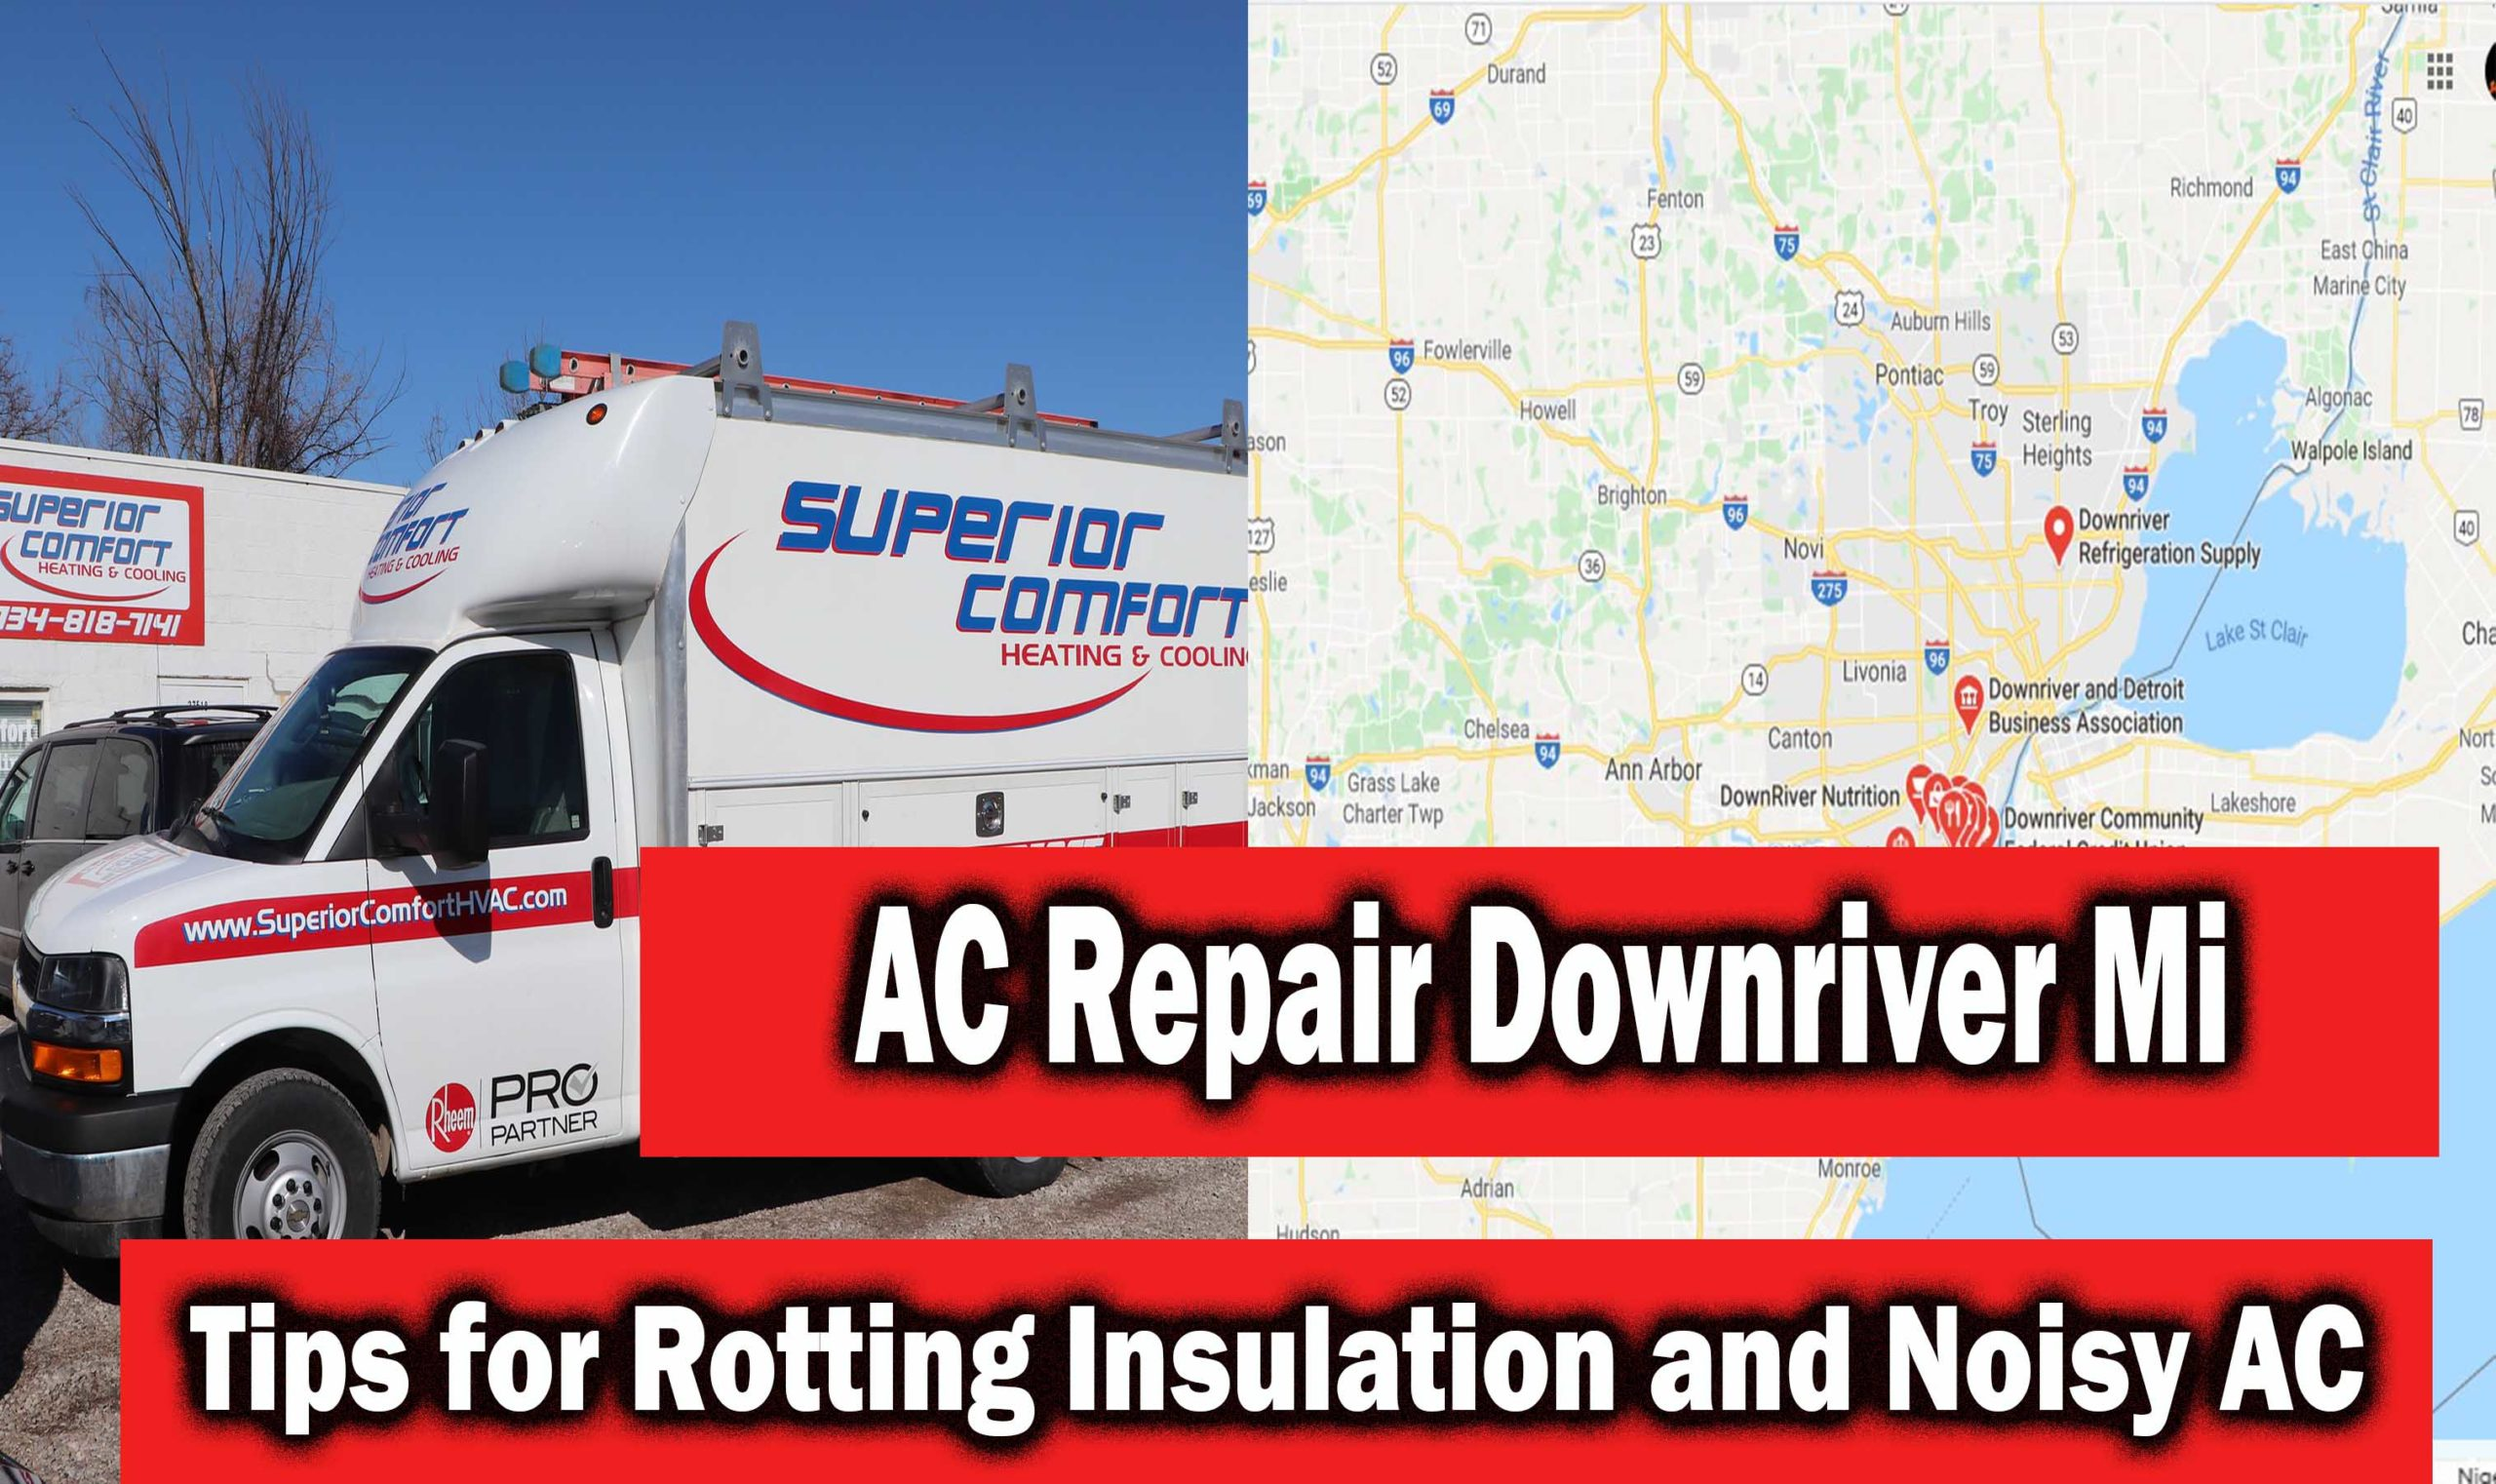 AC Repair Downriver Mi Tips to Replace Rotting Insulation and Fix Noisy Air Conditioner Units